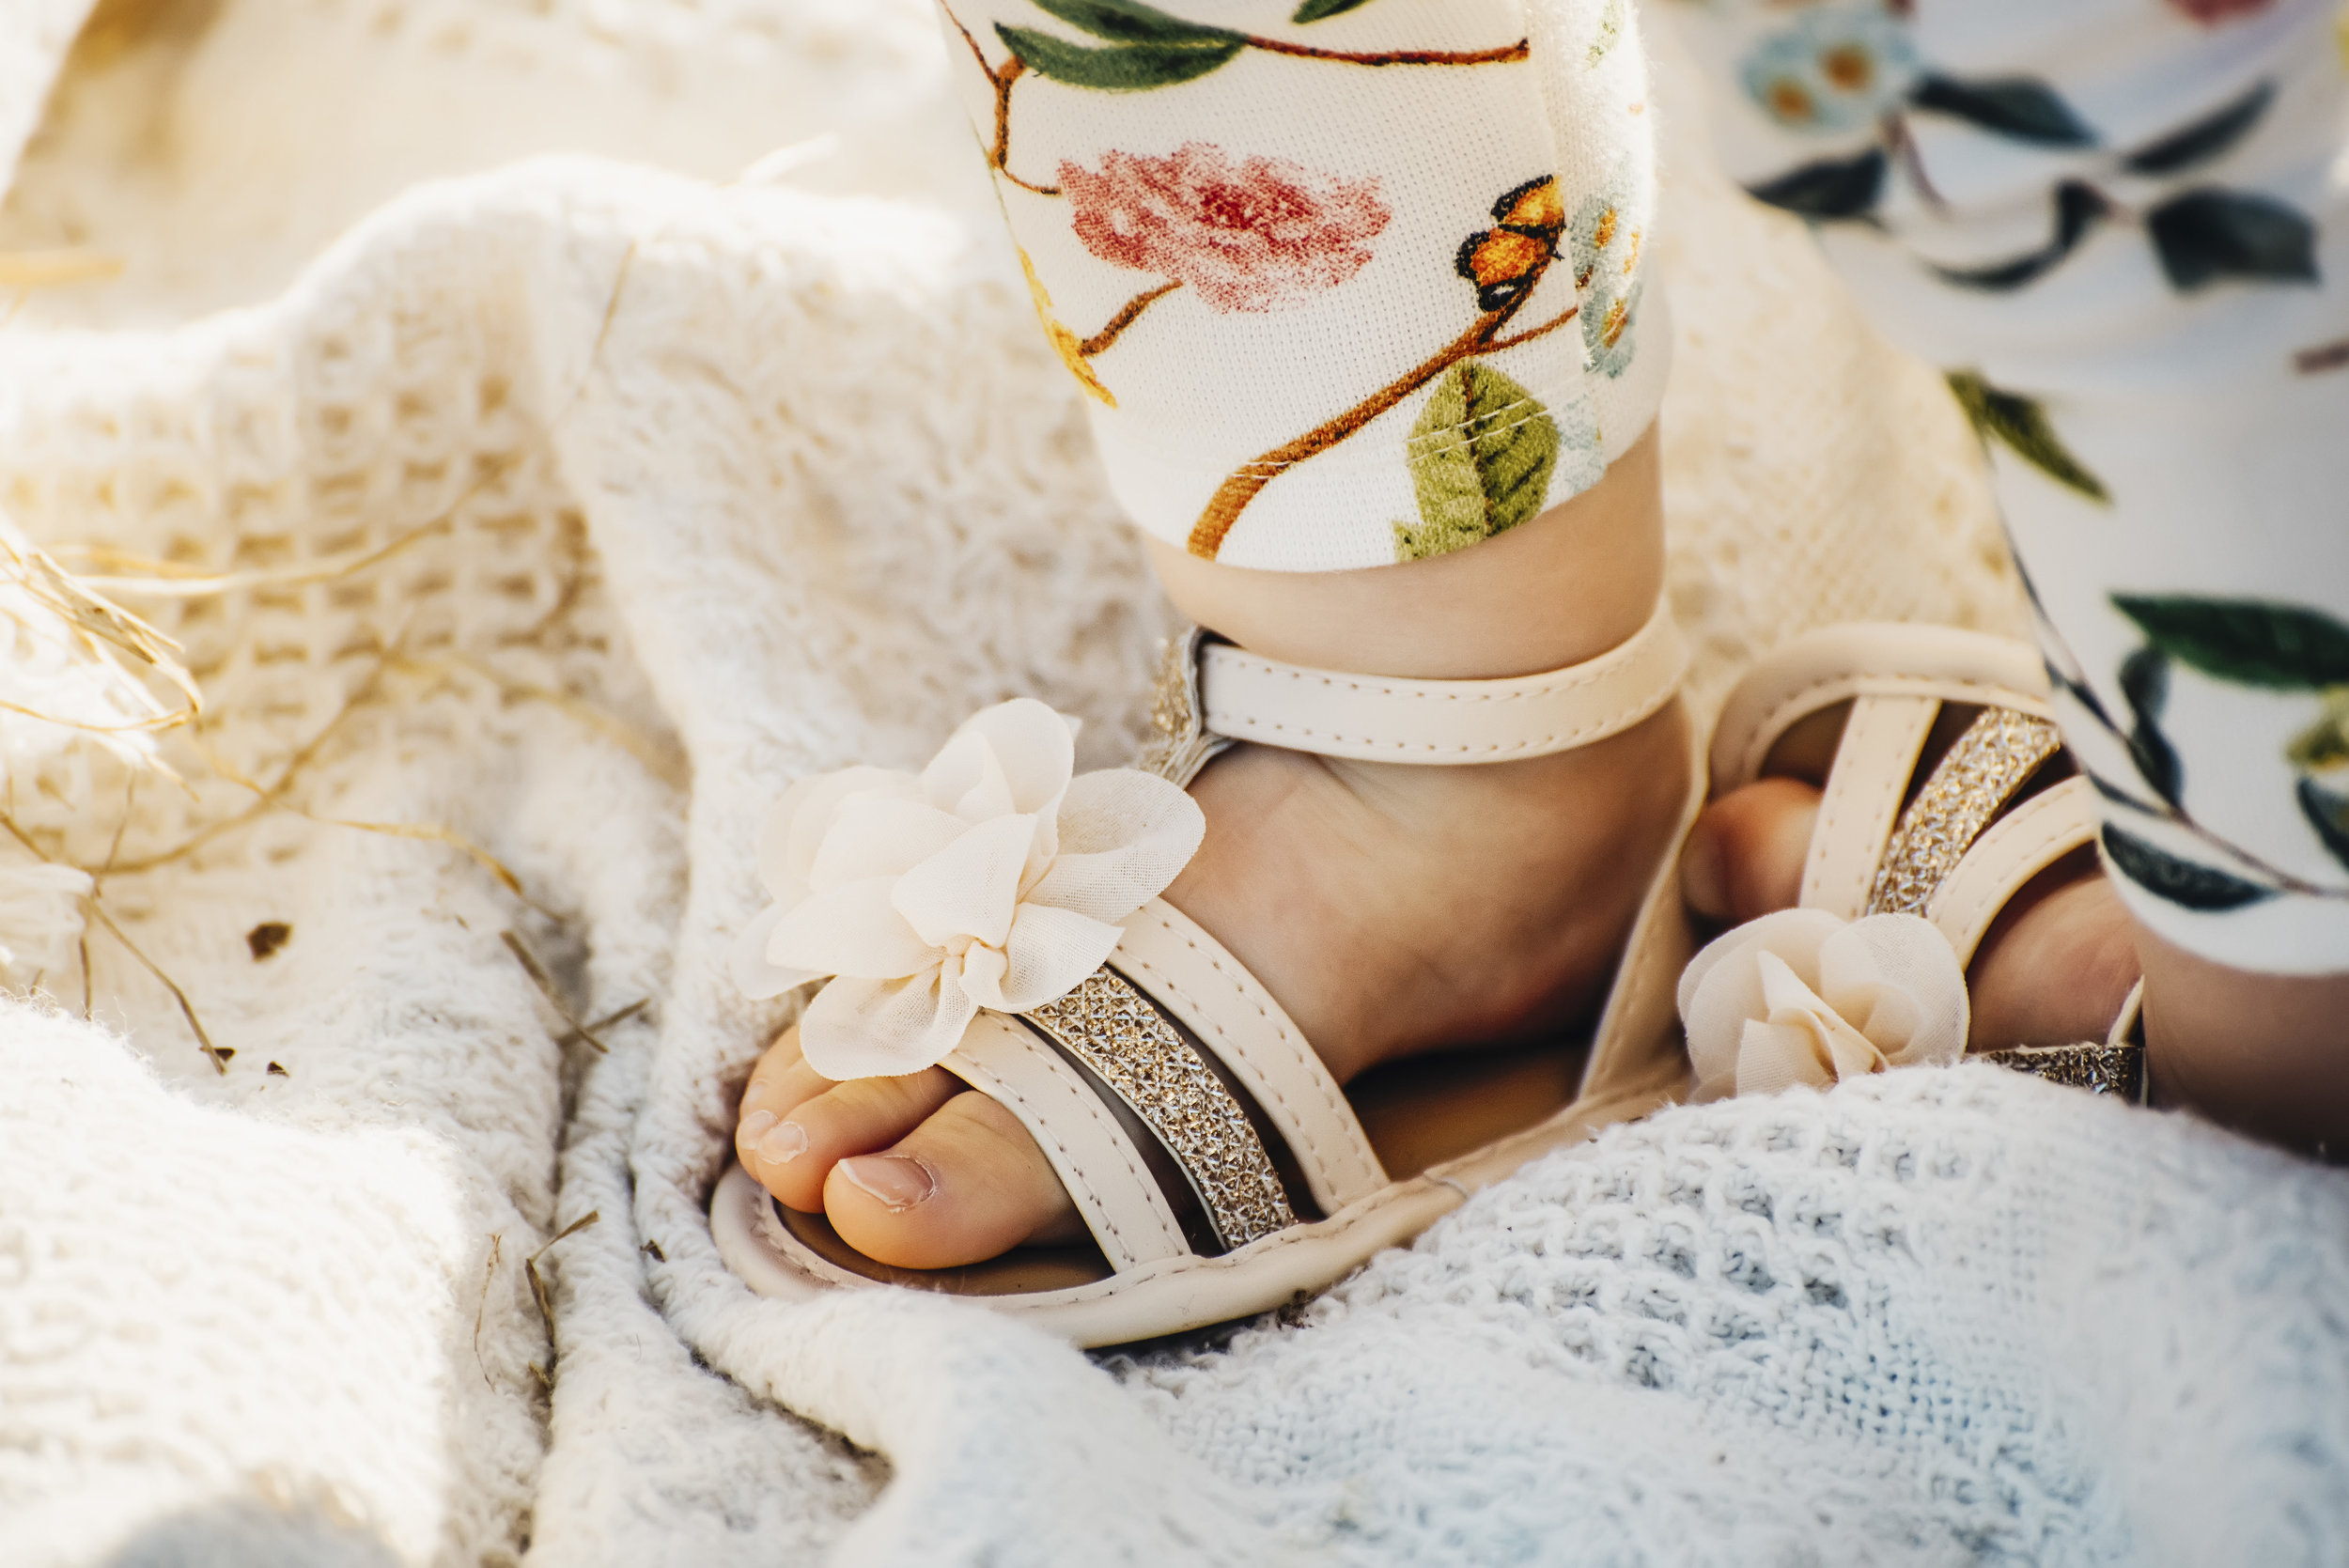 Baby feet! In adorable sandals no less. Need I say more?